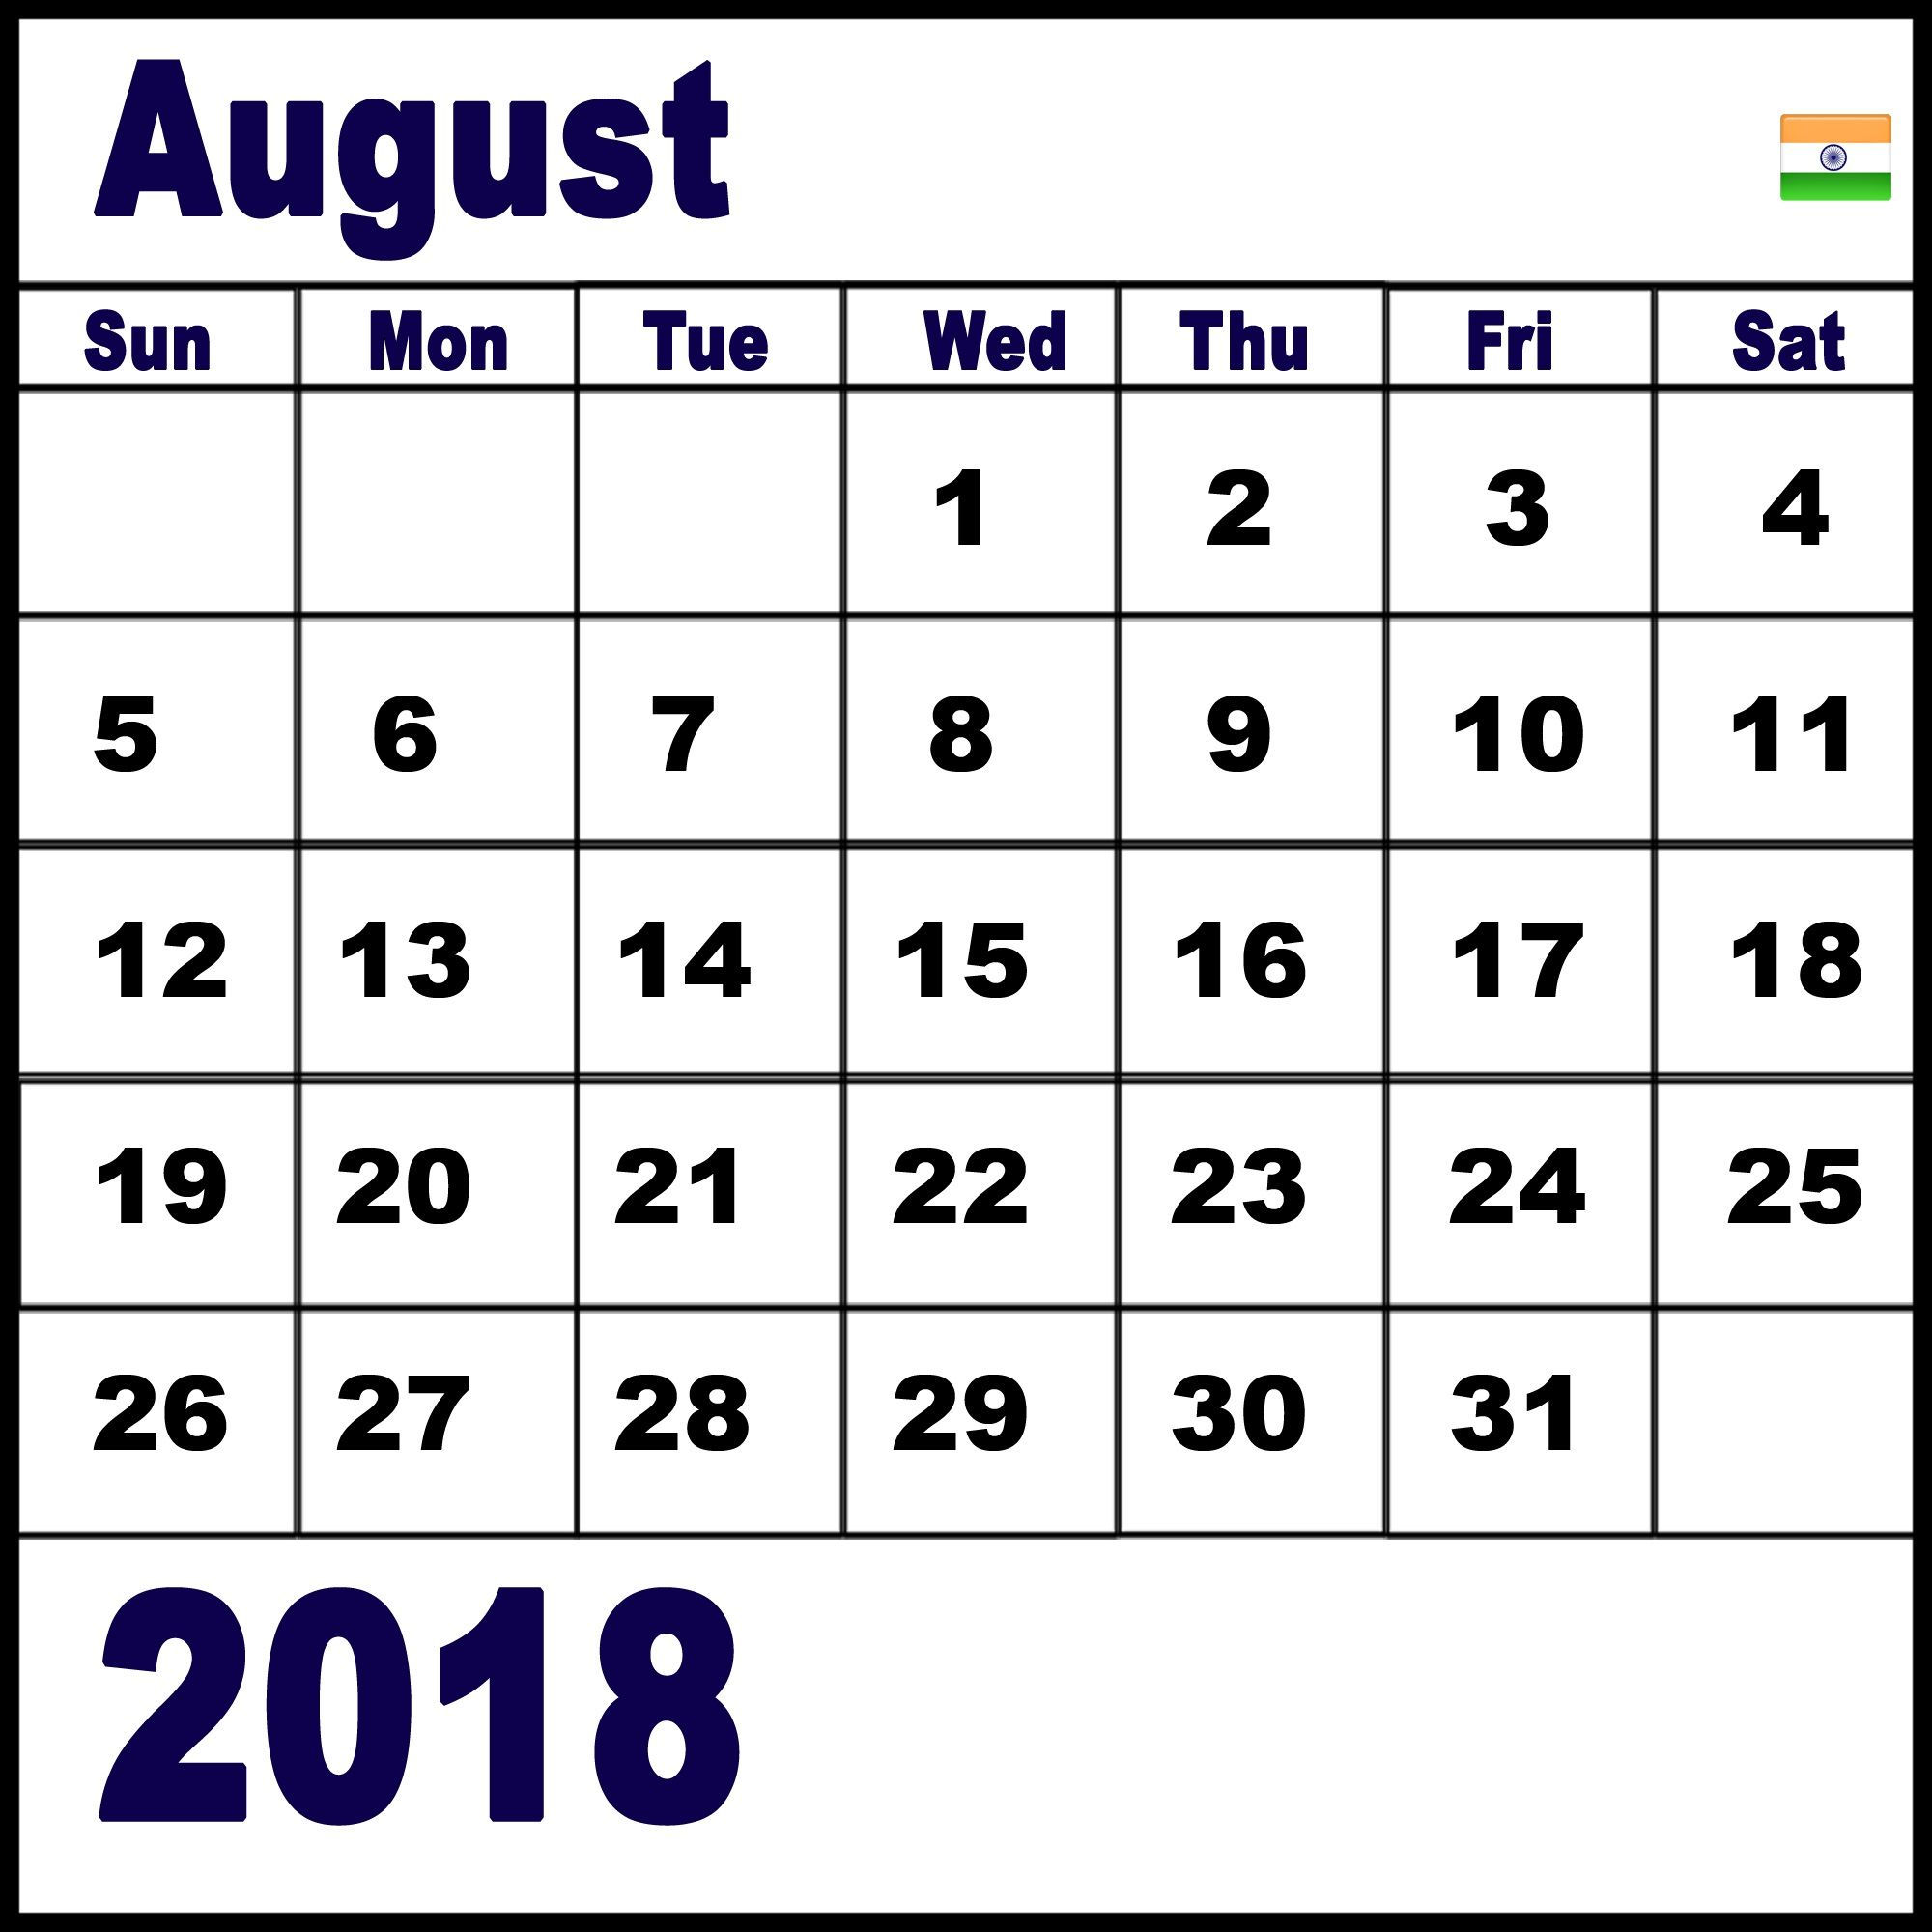 August 2018 Indian Calendar with Holidays.